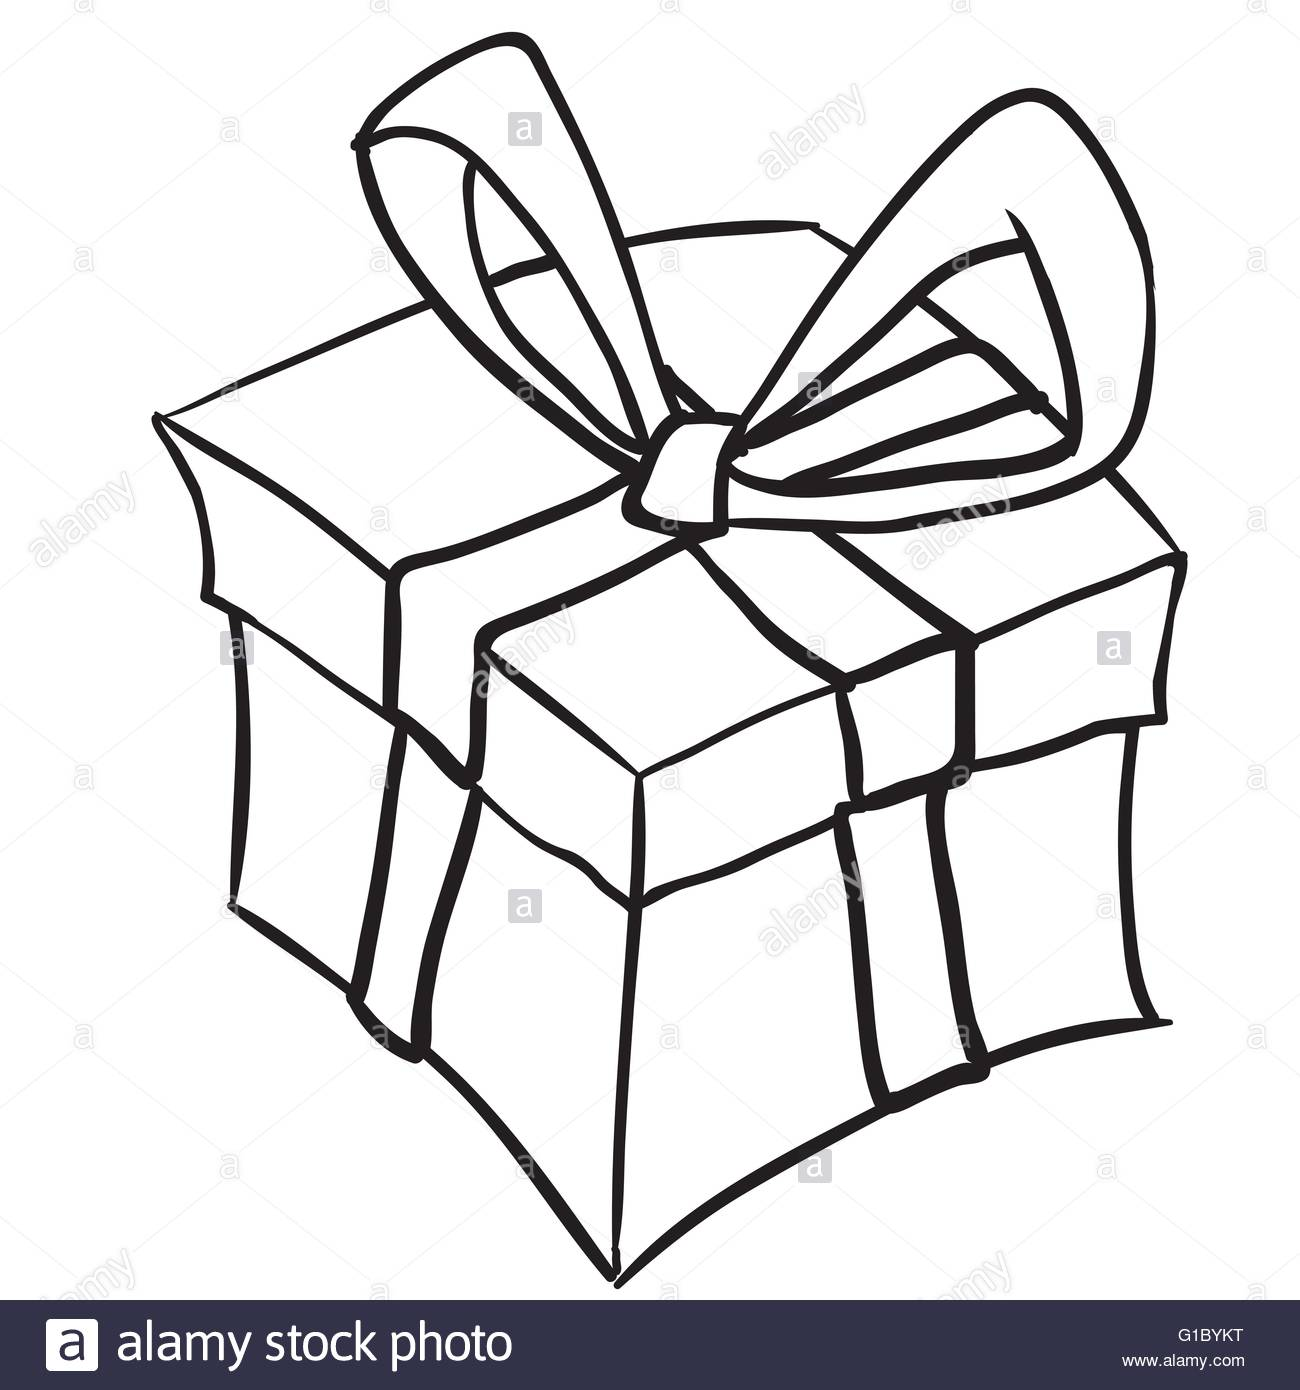 Gifts Clipart Black And White.